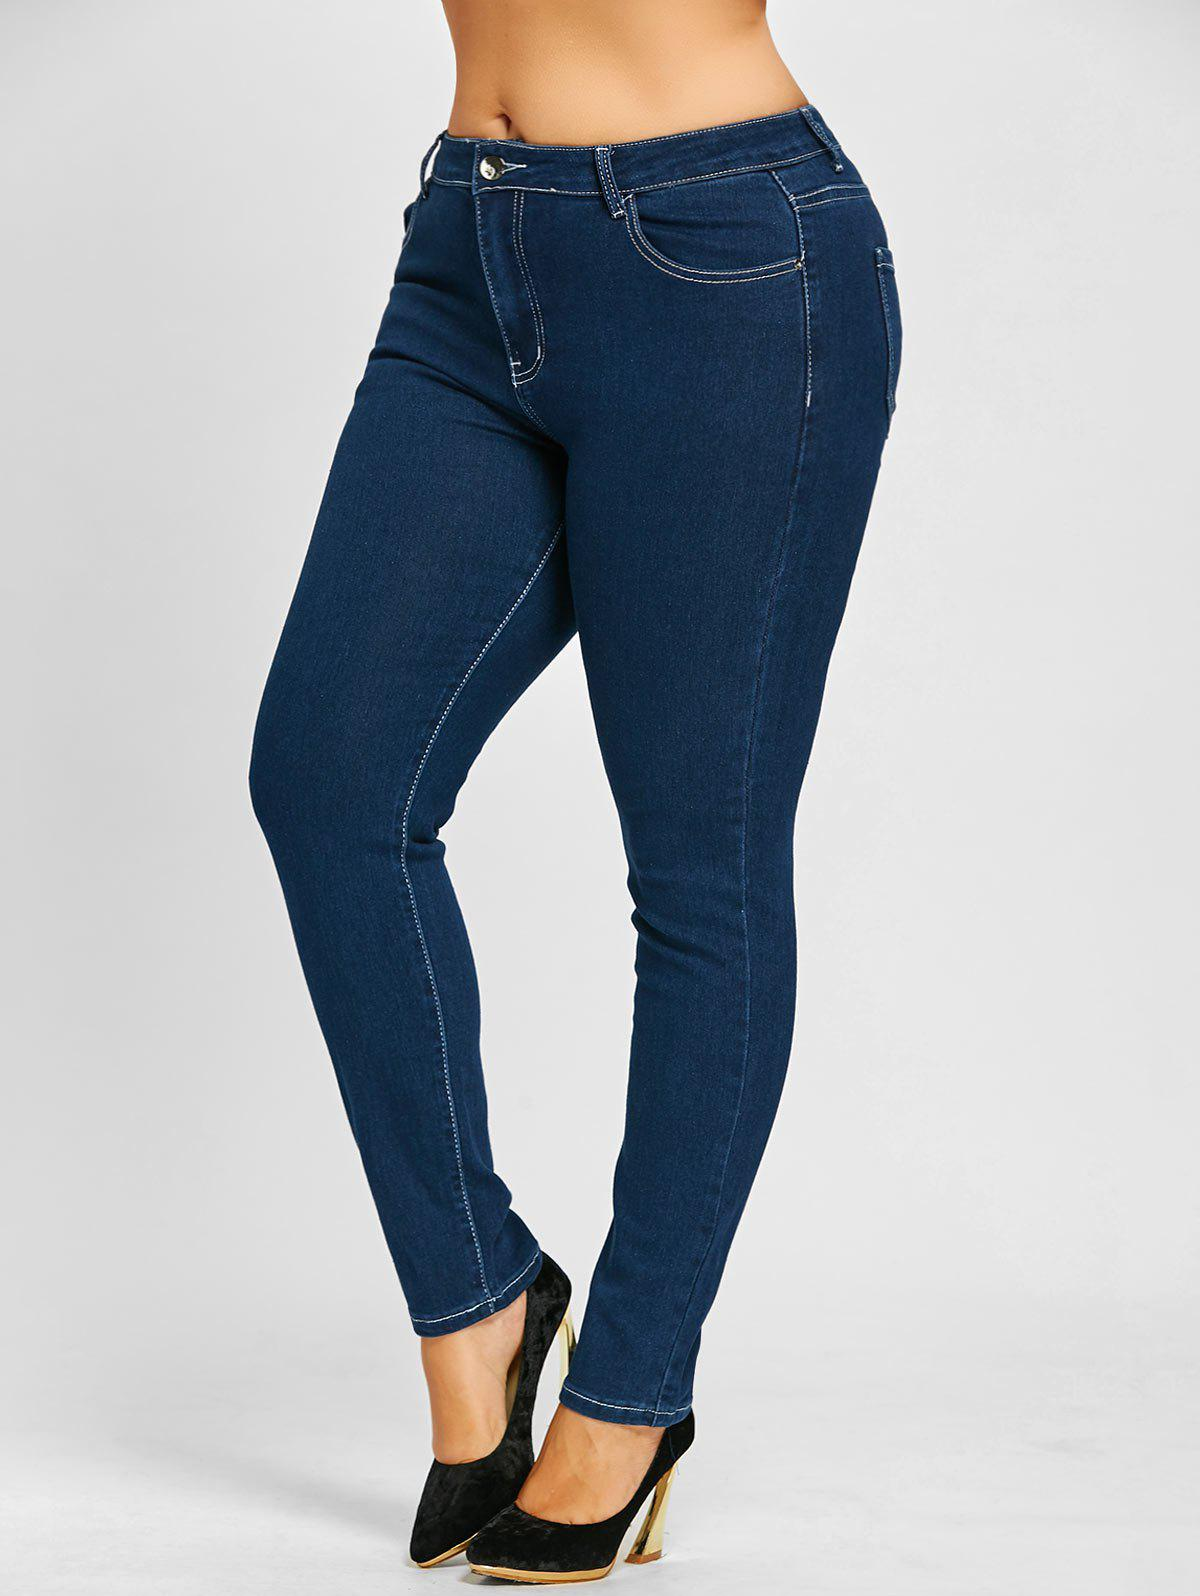 Plus Size Zip Up High Waist Stretch JeansWOMEN<br><br>Size: 4XL; Color: BLUE; Style: Fashion; Length: Ninth; Material: Jeans; Fit Type: Skinny; Waist Type: High; Closure Type: Zipper Fly; Pattern Type: Solid; Embellishment: Pockets; Pant Style: Pencil Pants; Weight: 0.6200kg; Package Contents: 1 x Jeans;